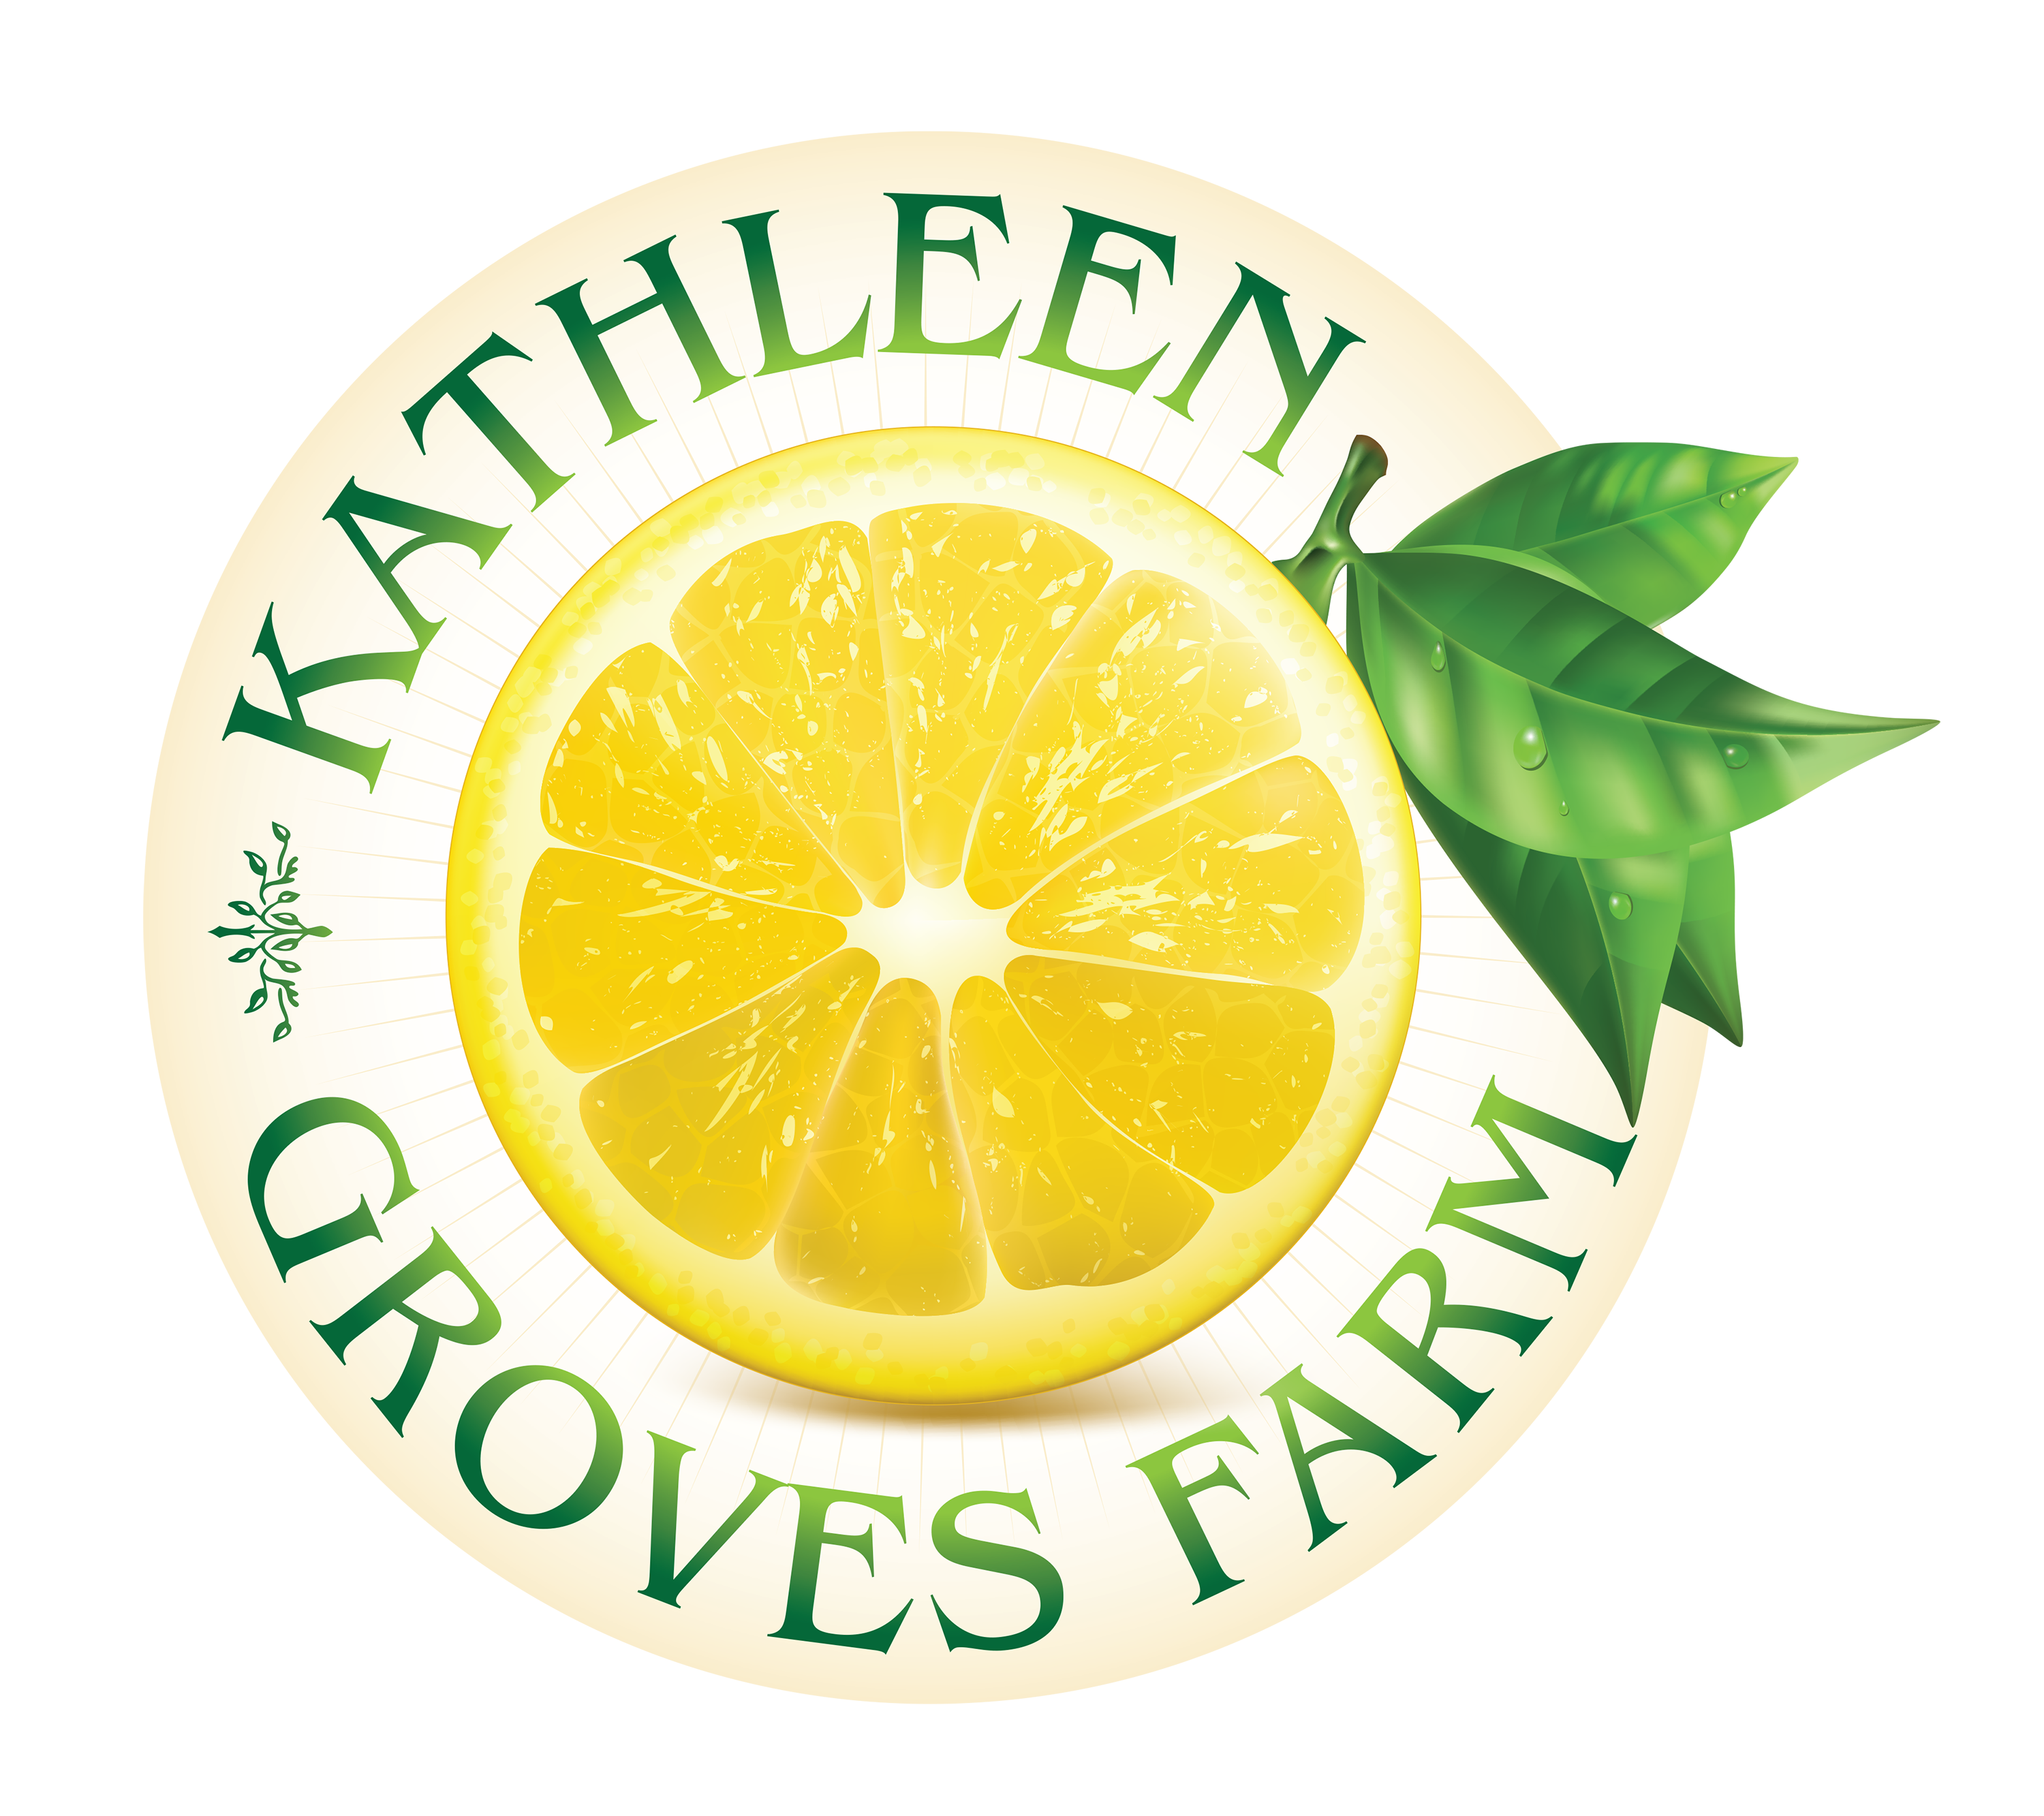 Kathleen Groves Farm